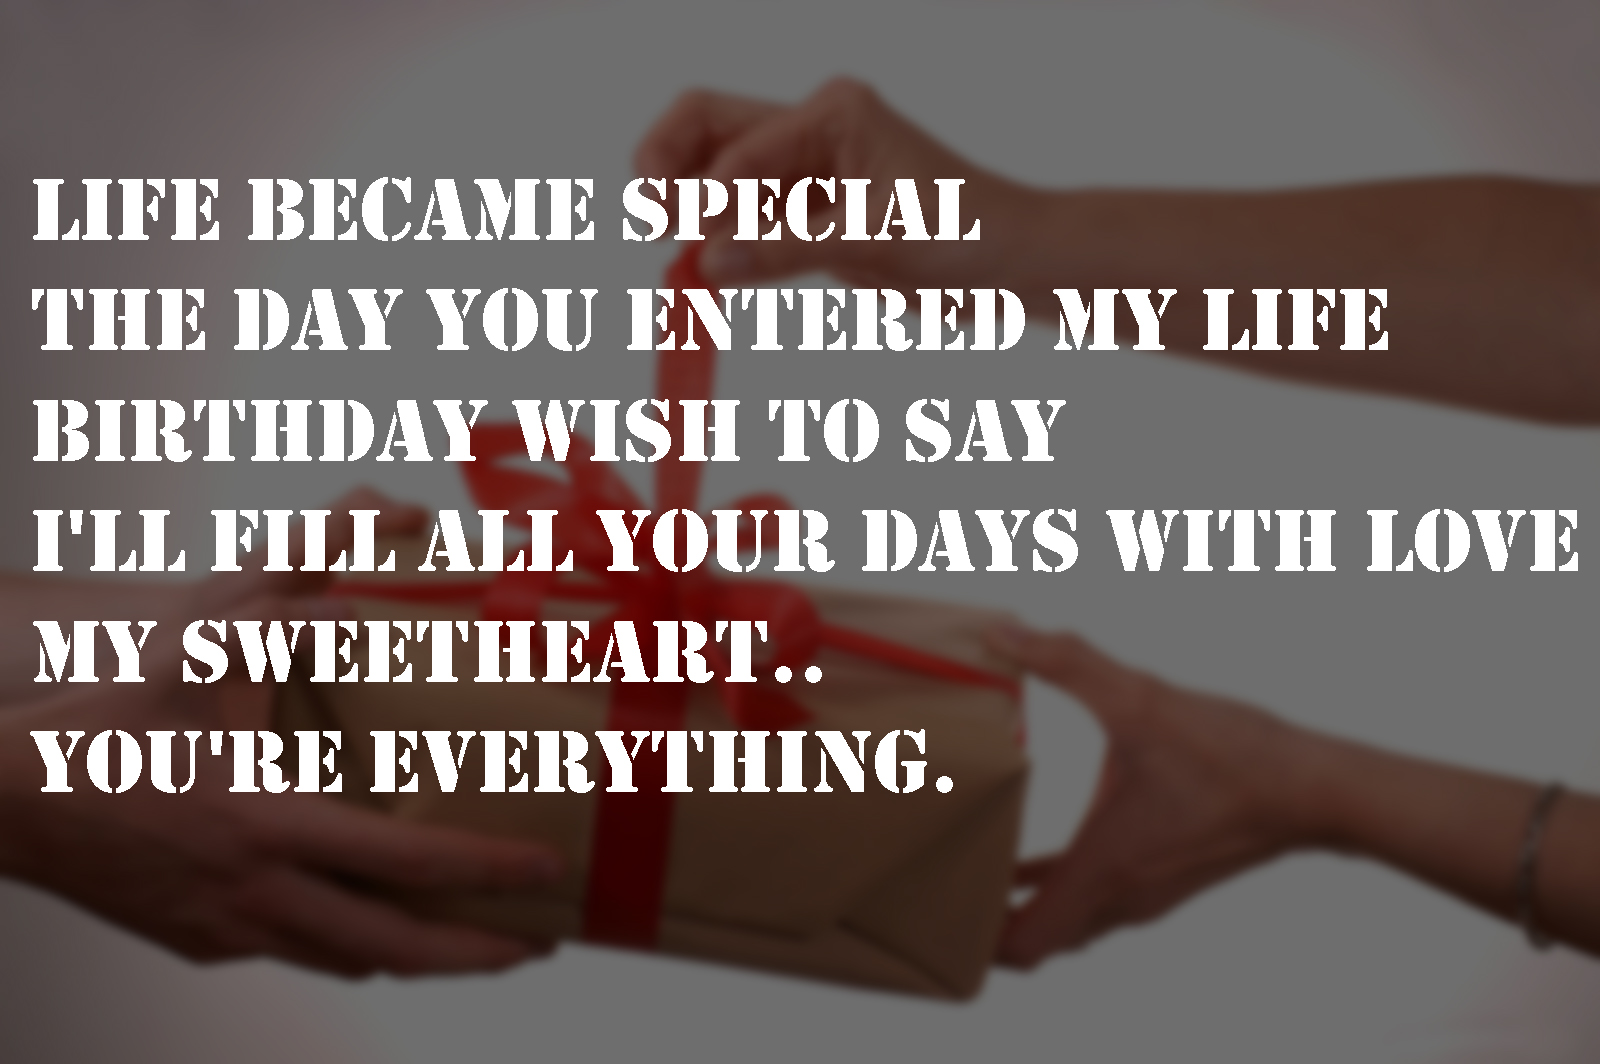 Love Quotes For My Boyfriend Birthday Quotes For Girlfriend From Boyfriend Happy Birthday Baby